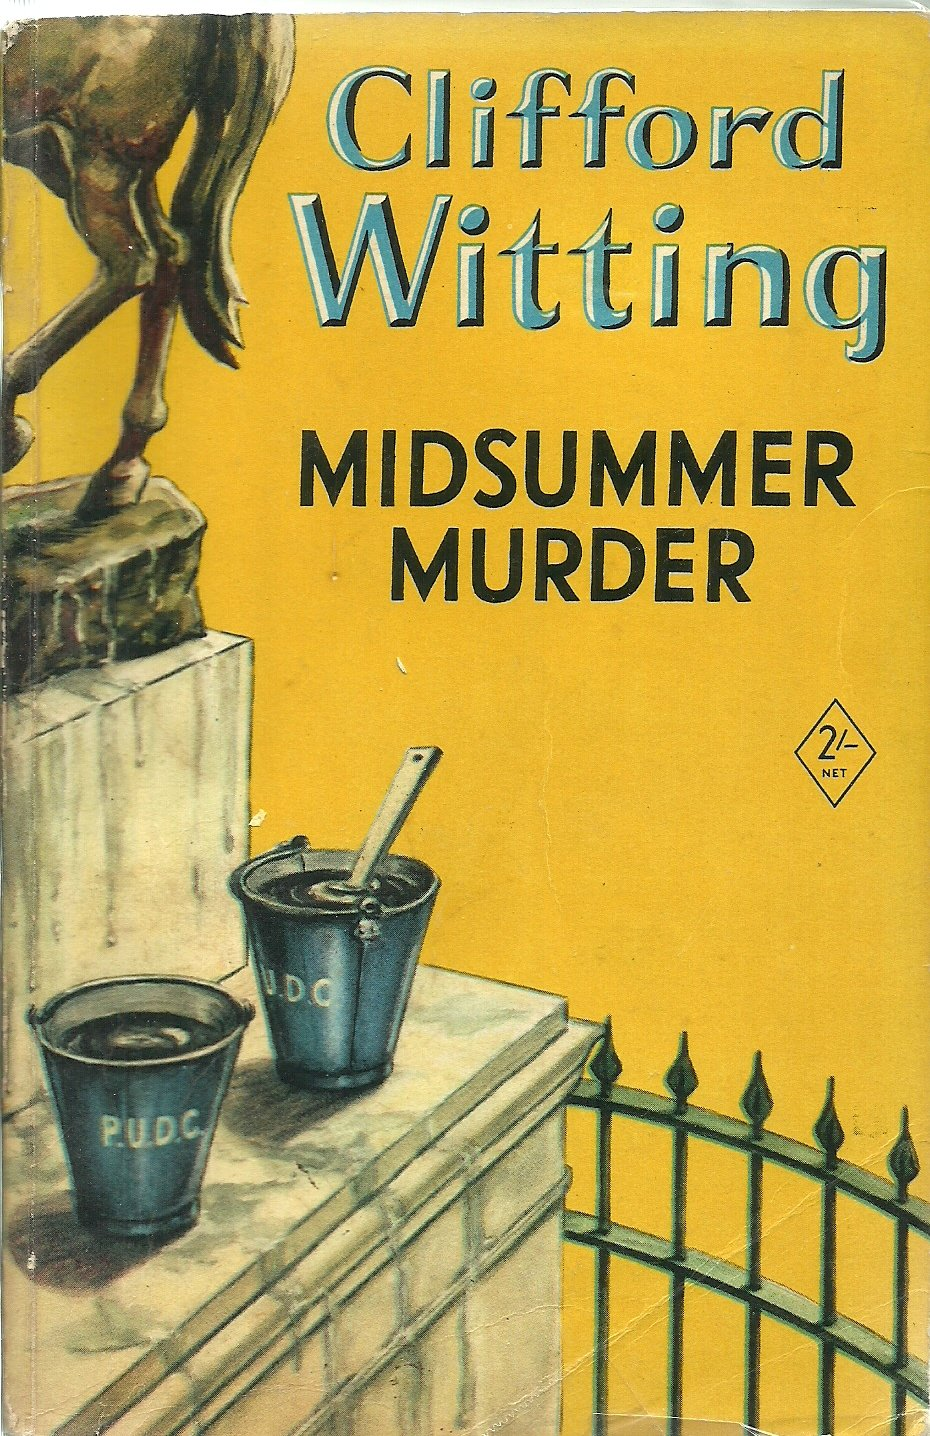 Image result for clifford witting midsummer murder